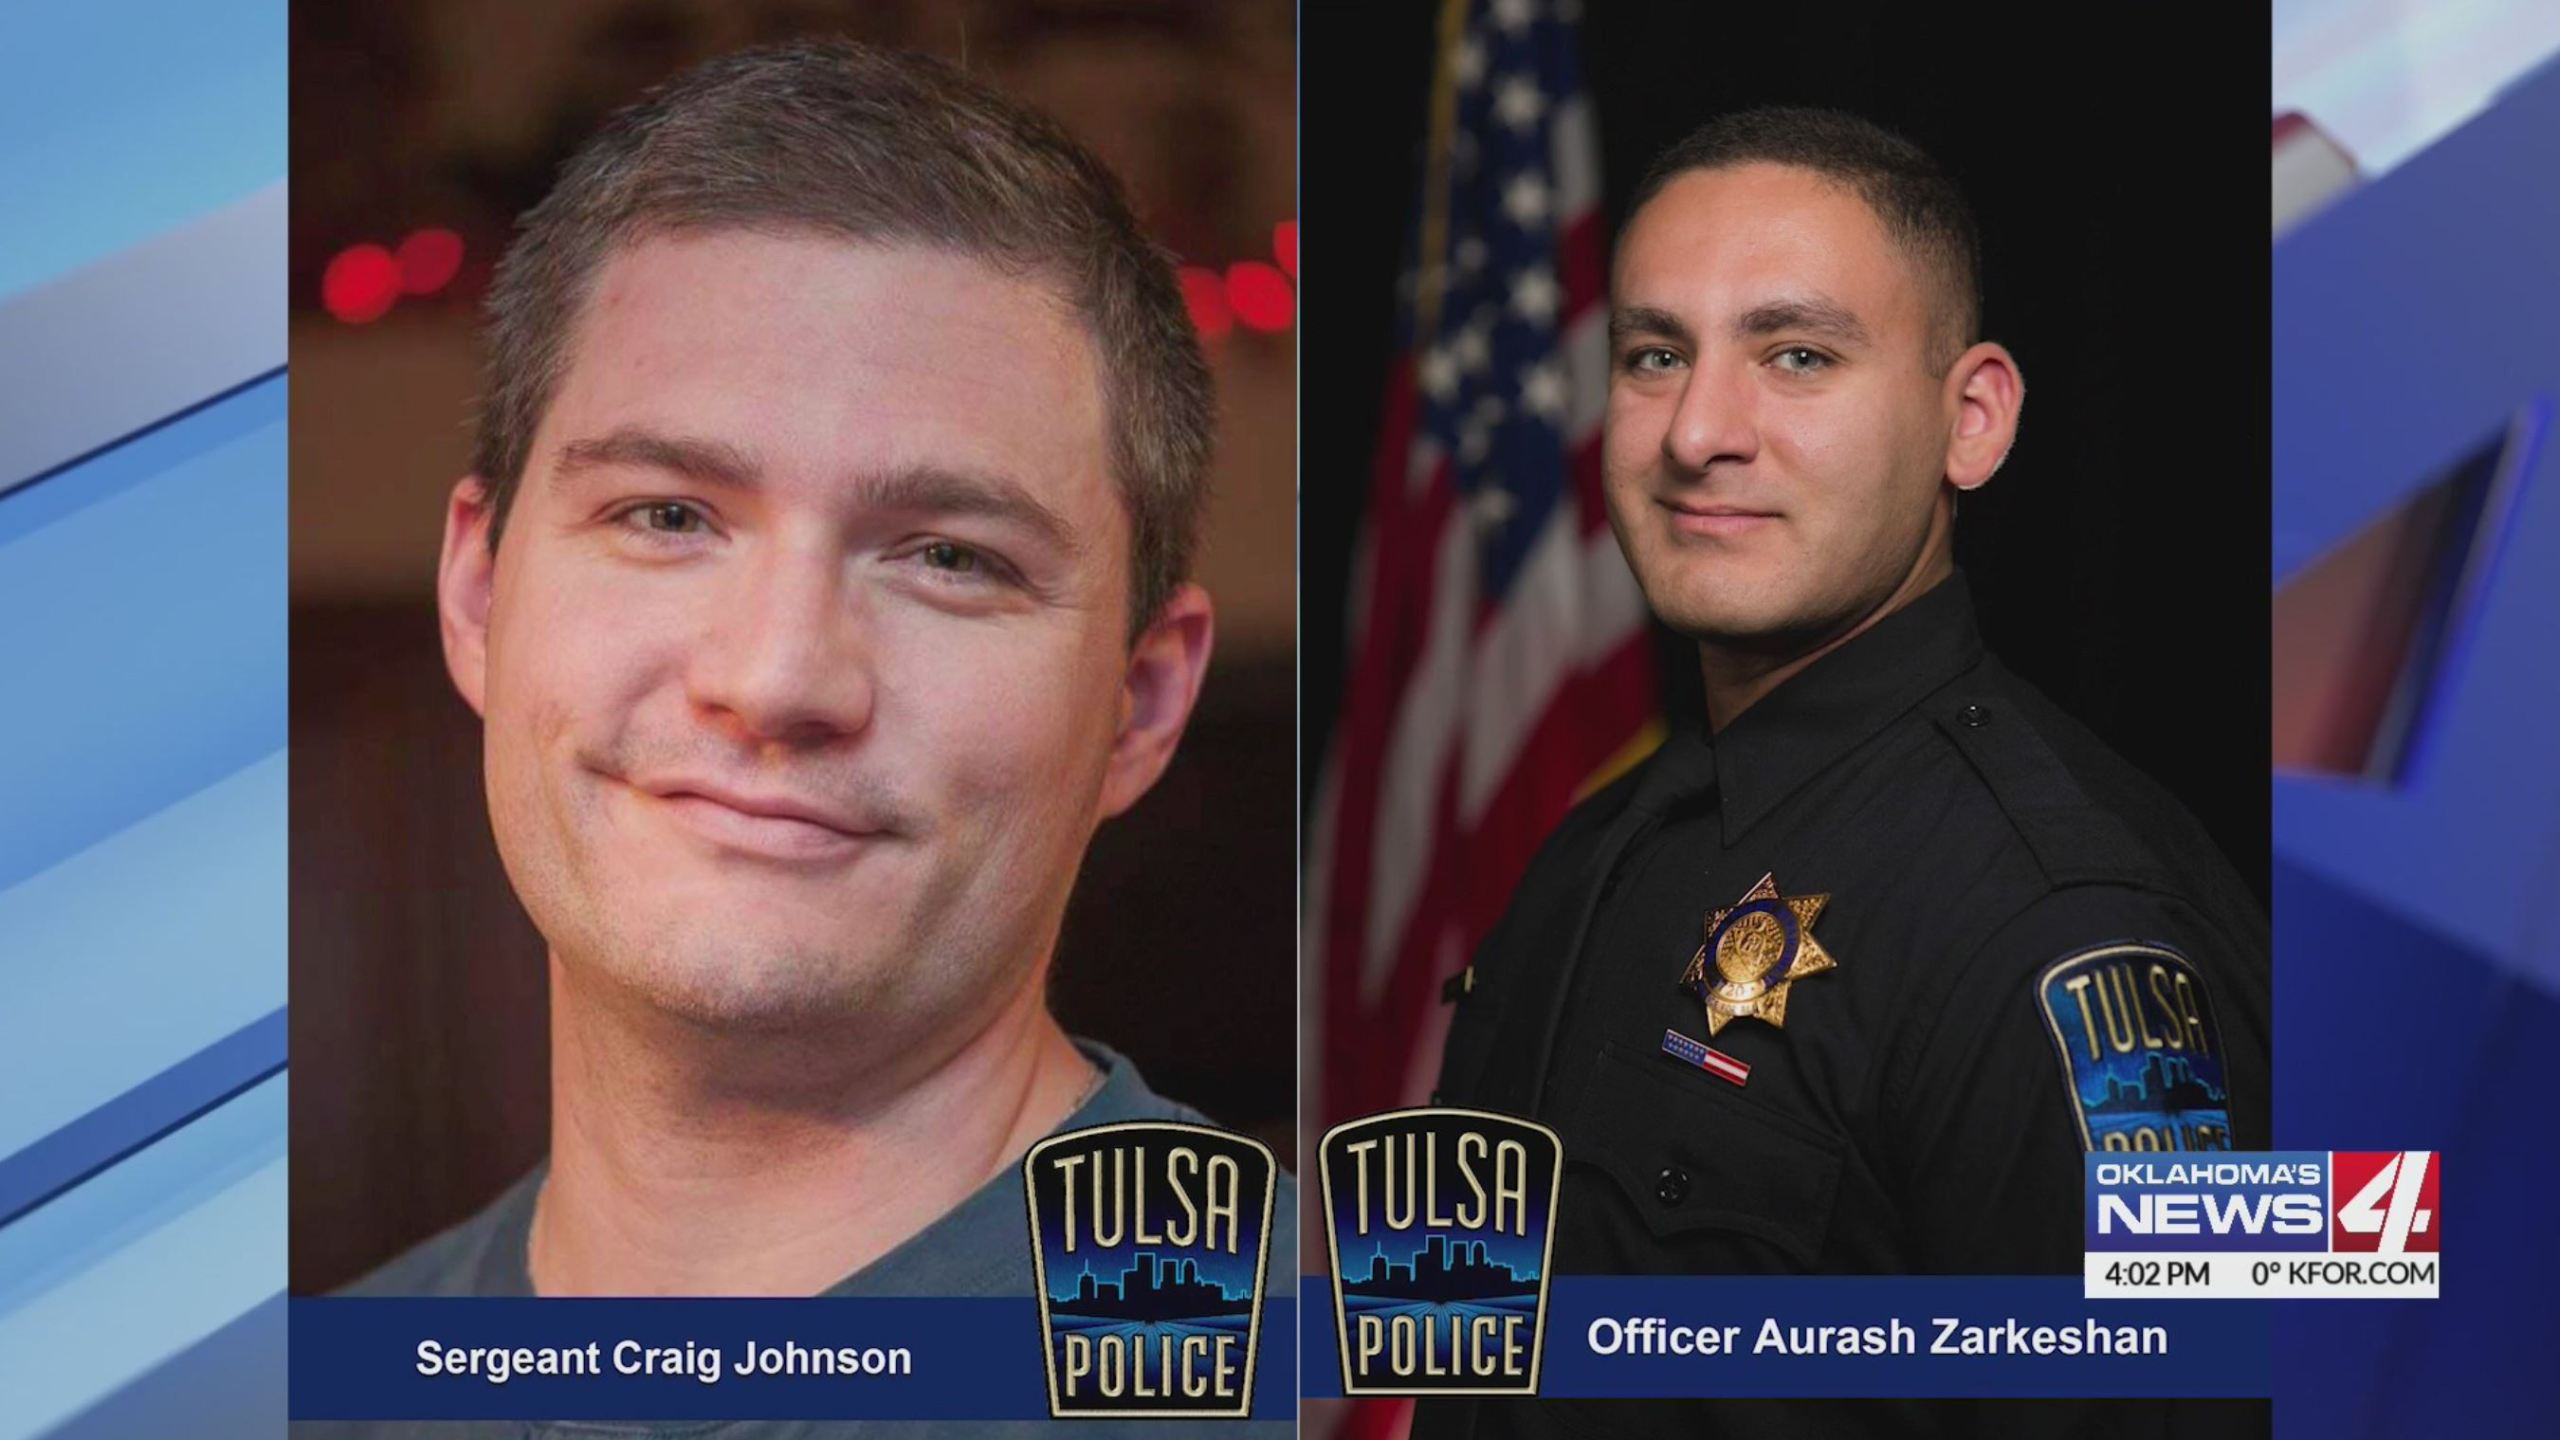 Sgt. Craig Johnson and Officer Aurash Zarkeshan